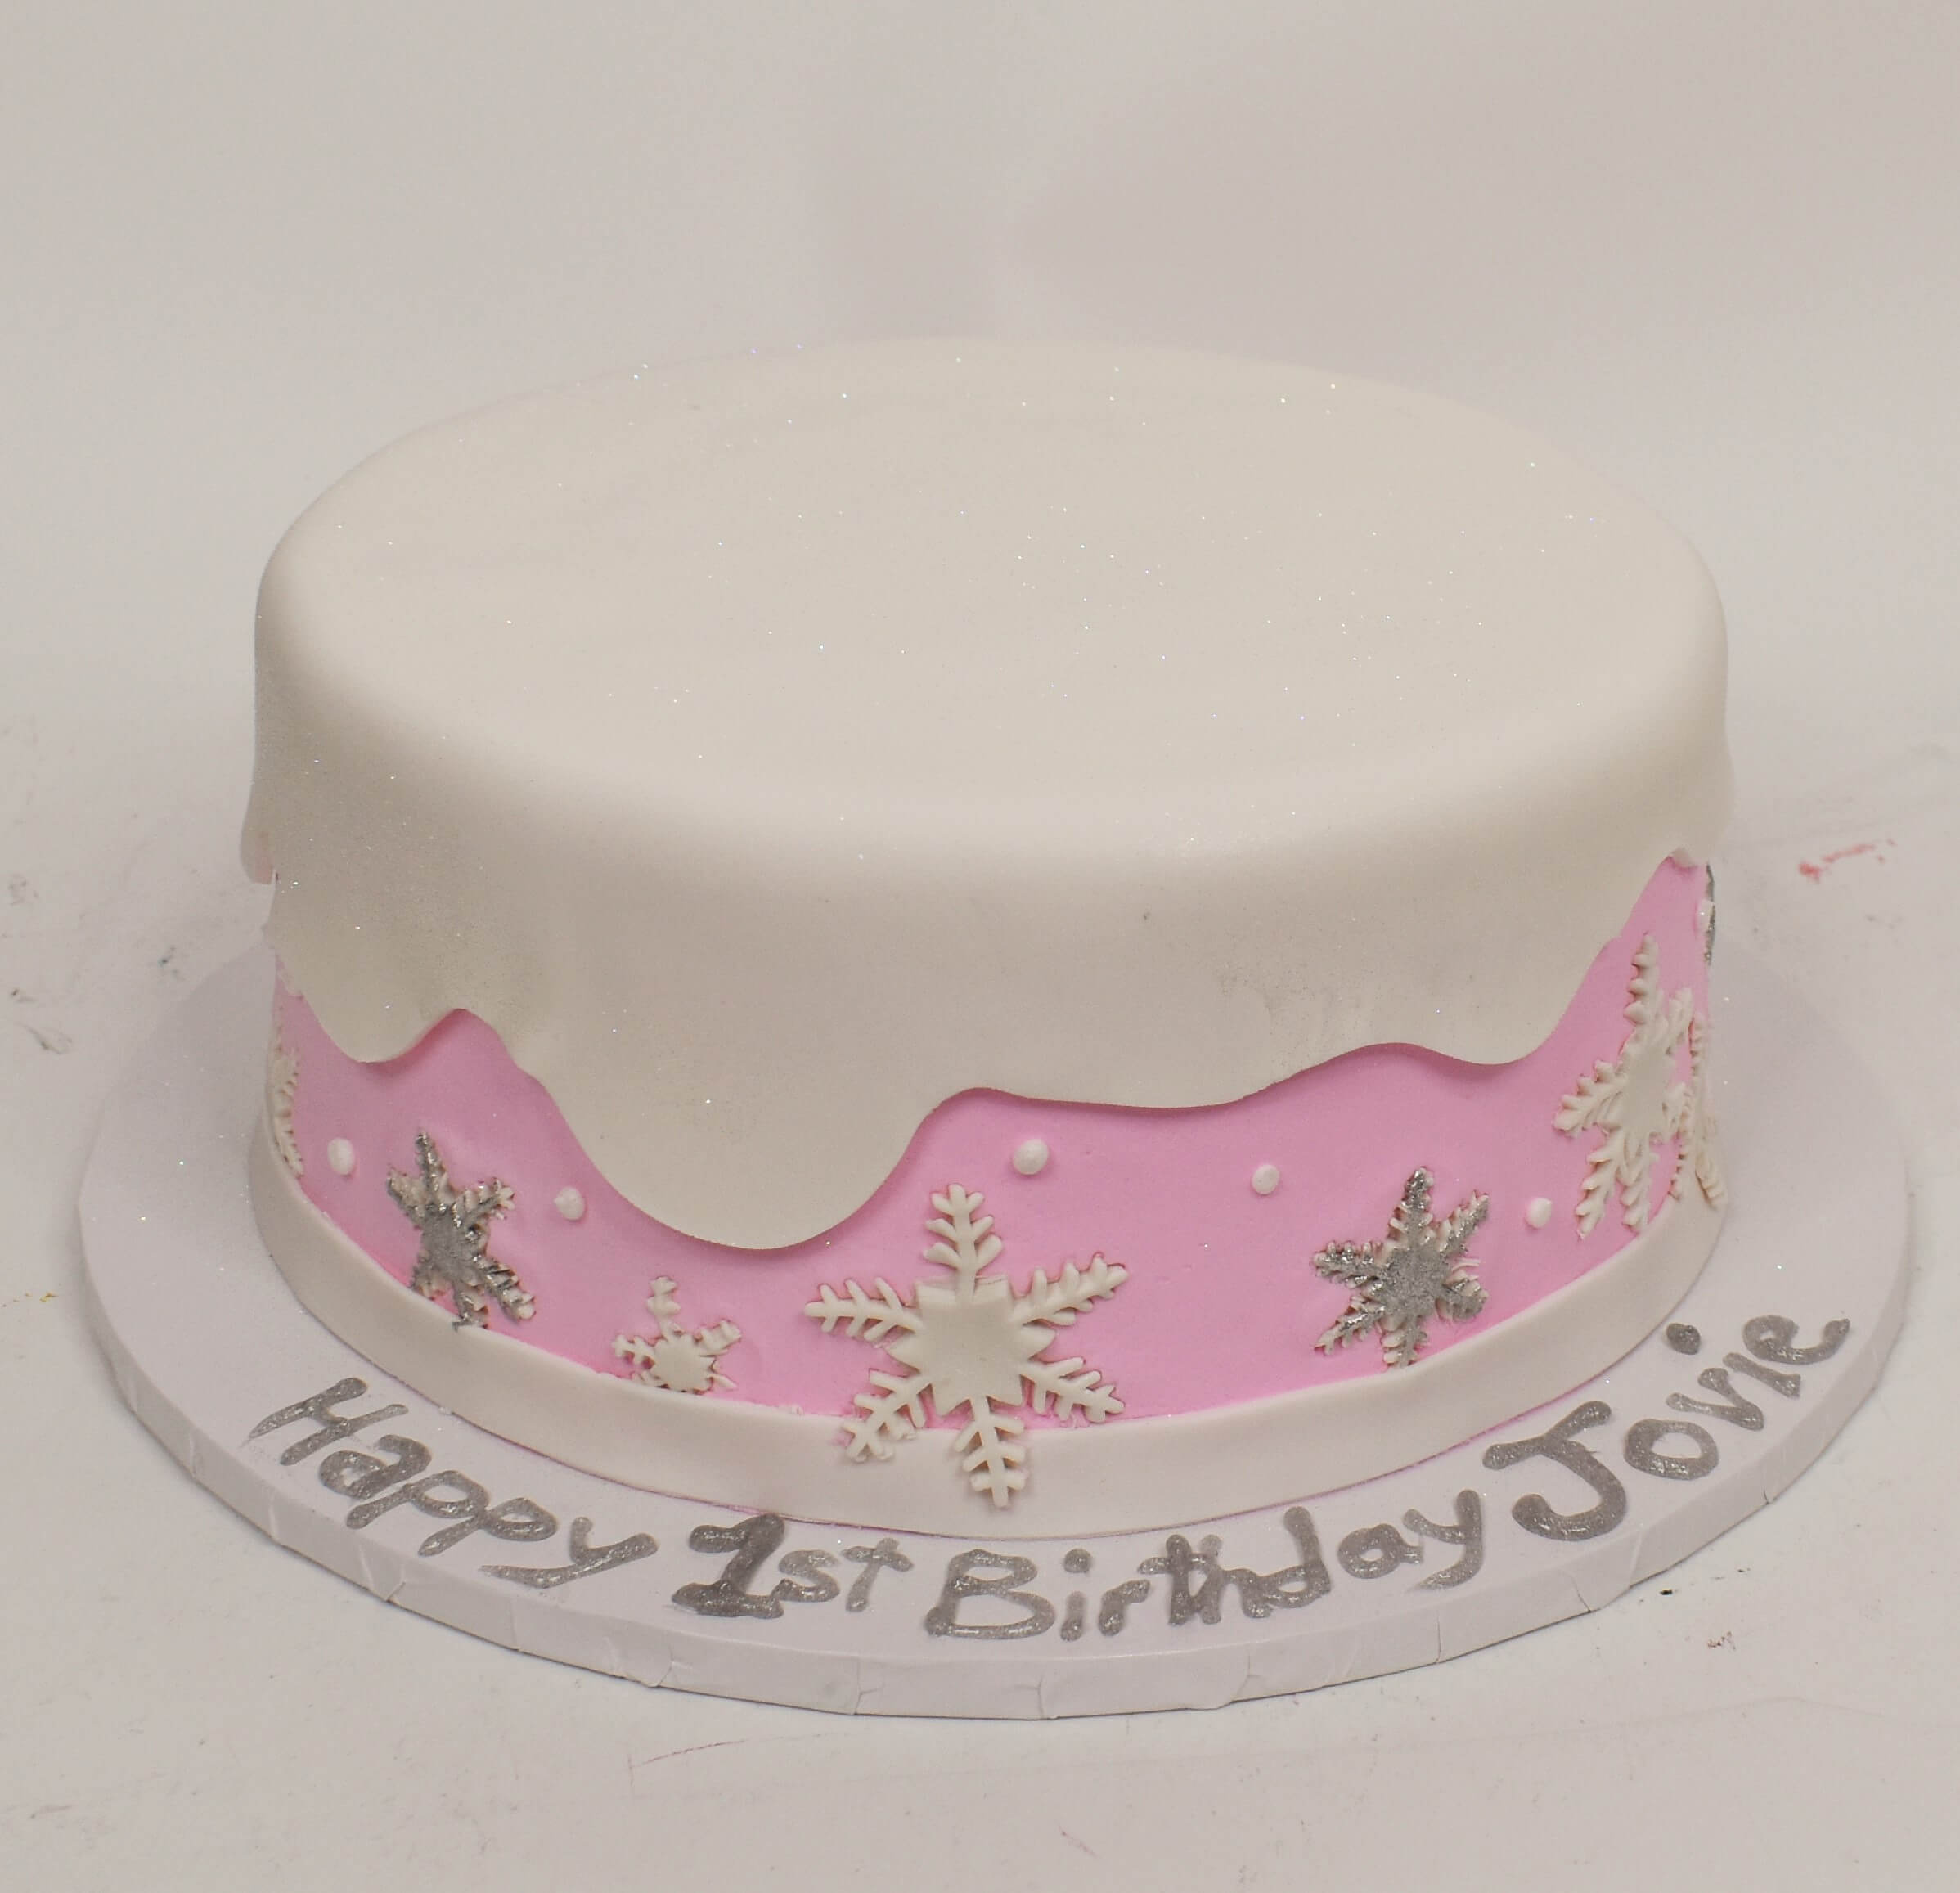 McArthur's Bakery Custom Cake With Snowflakes And Snow Cover